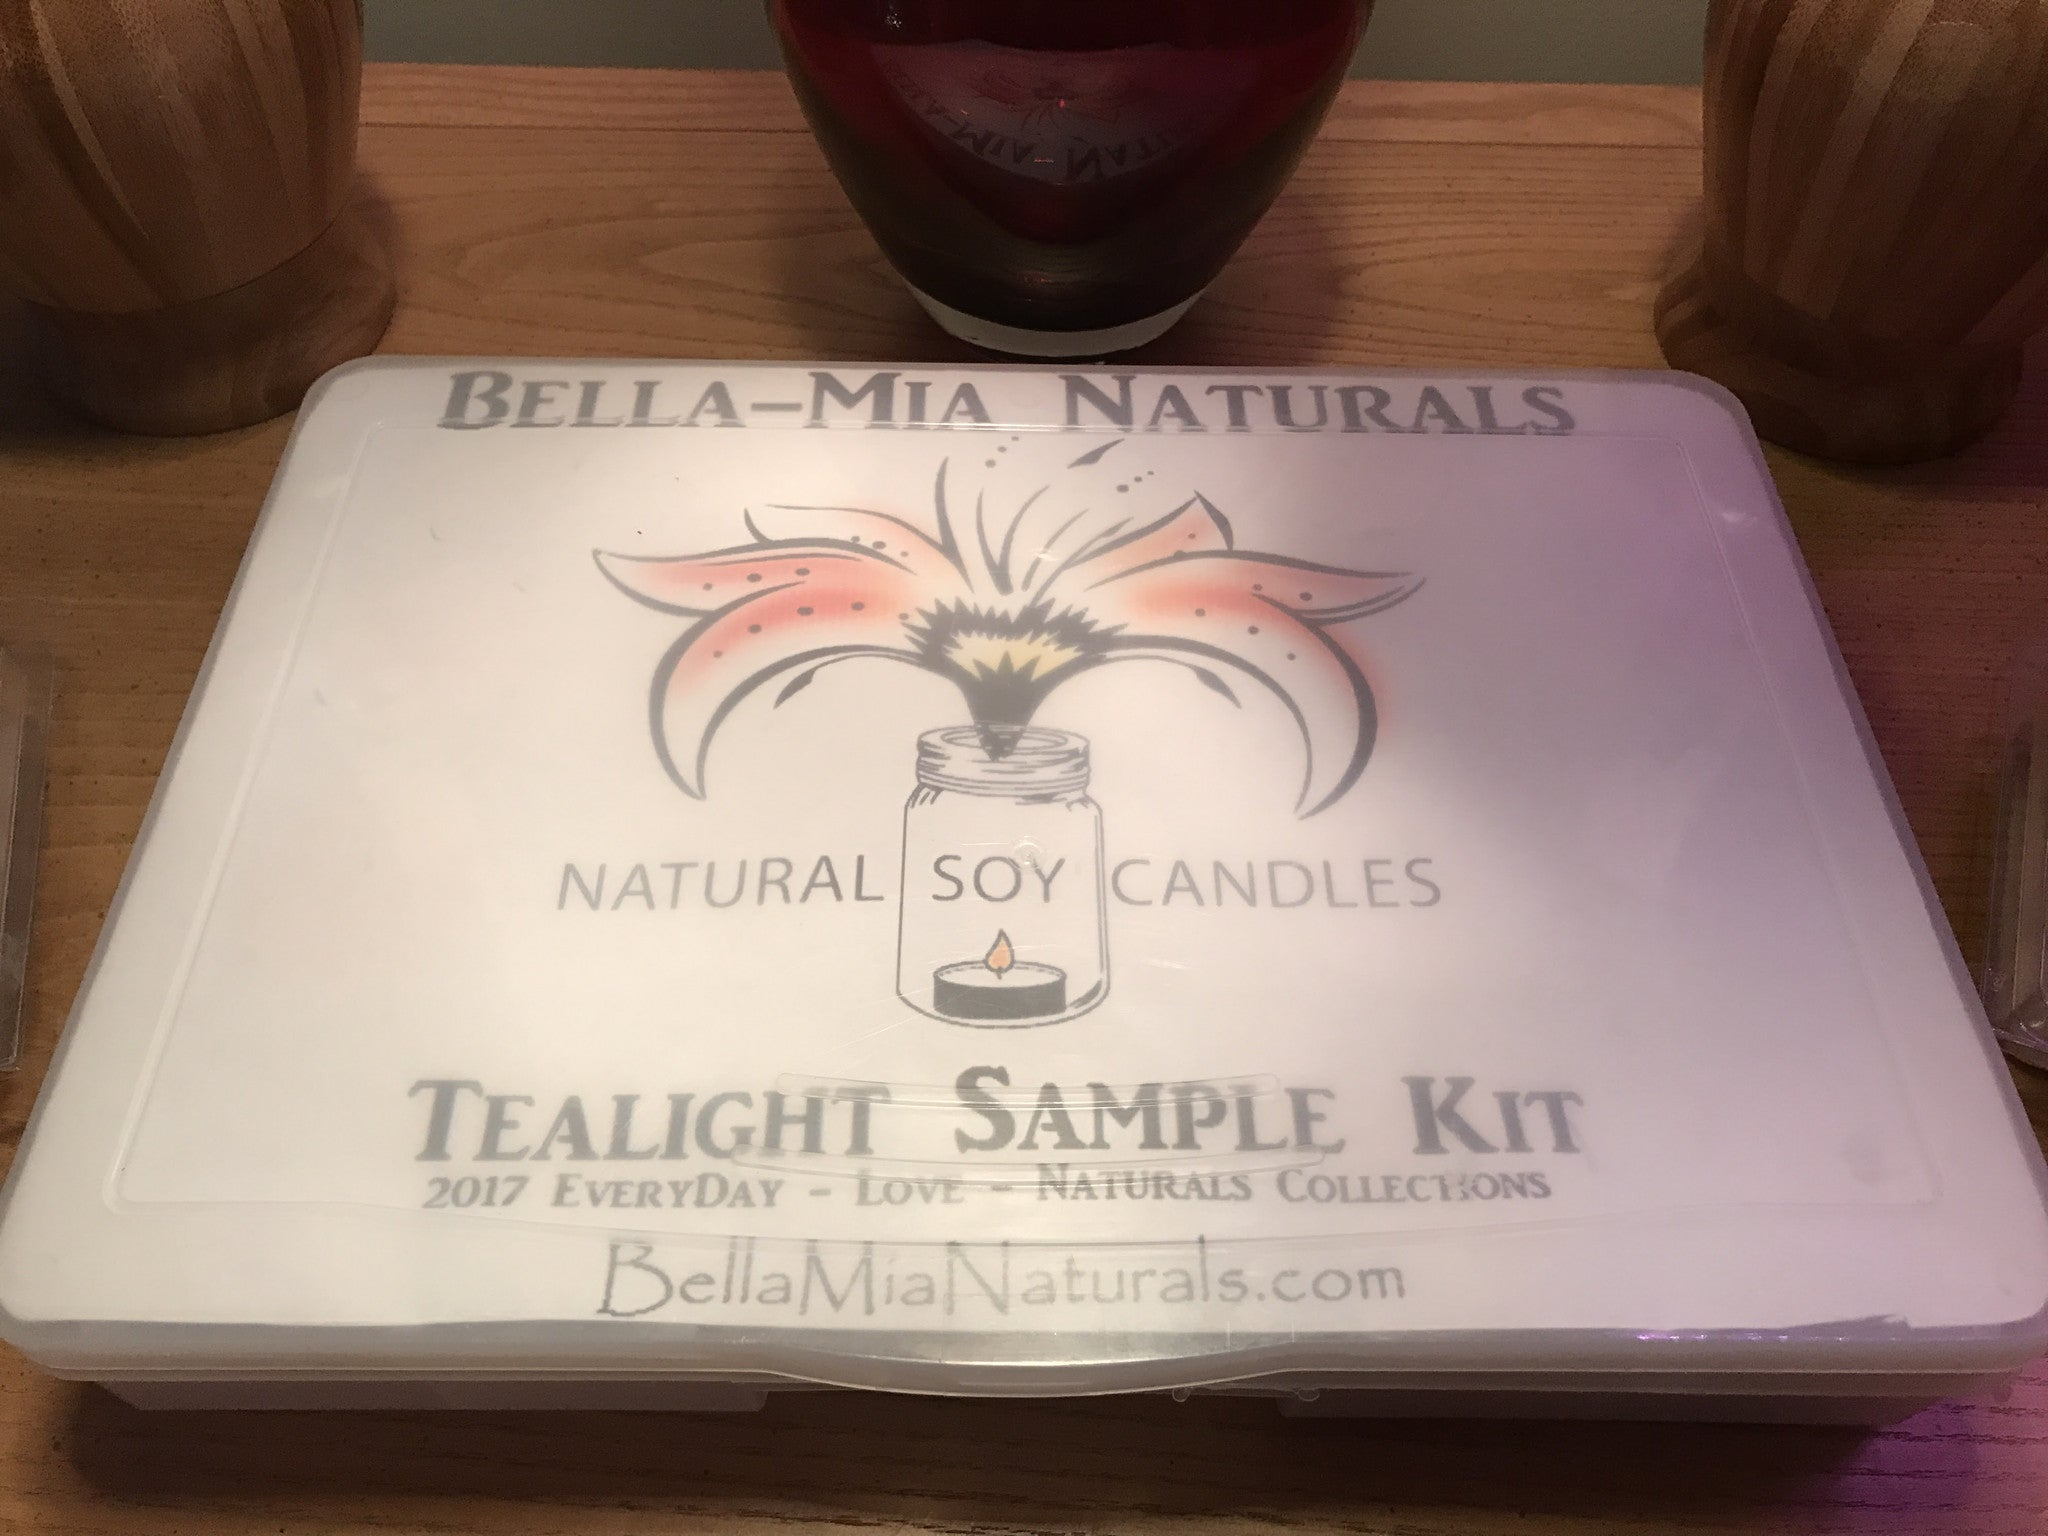 Tealight Sample Kit